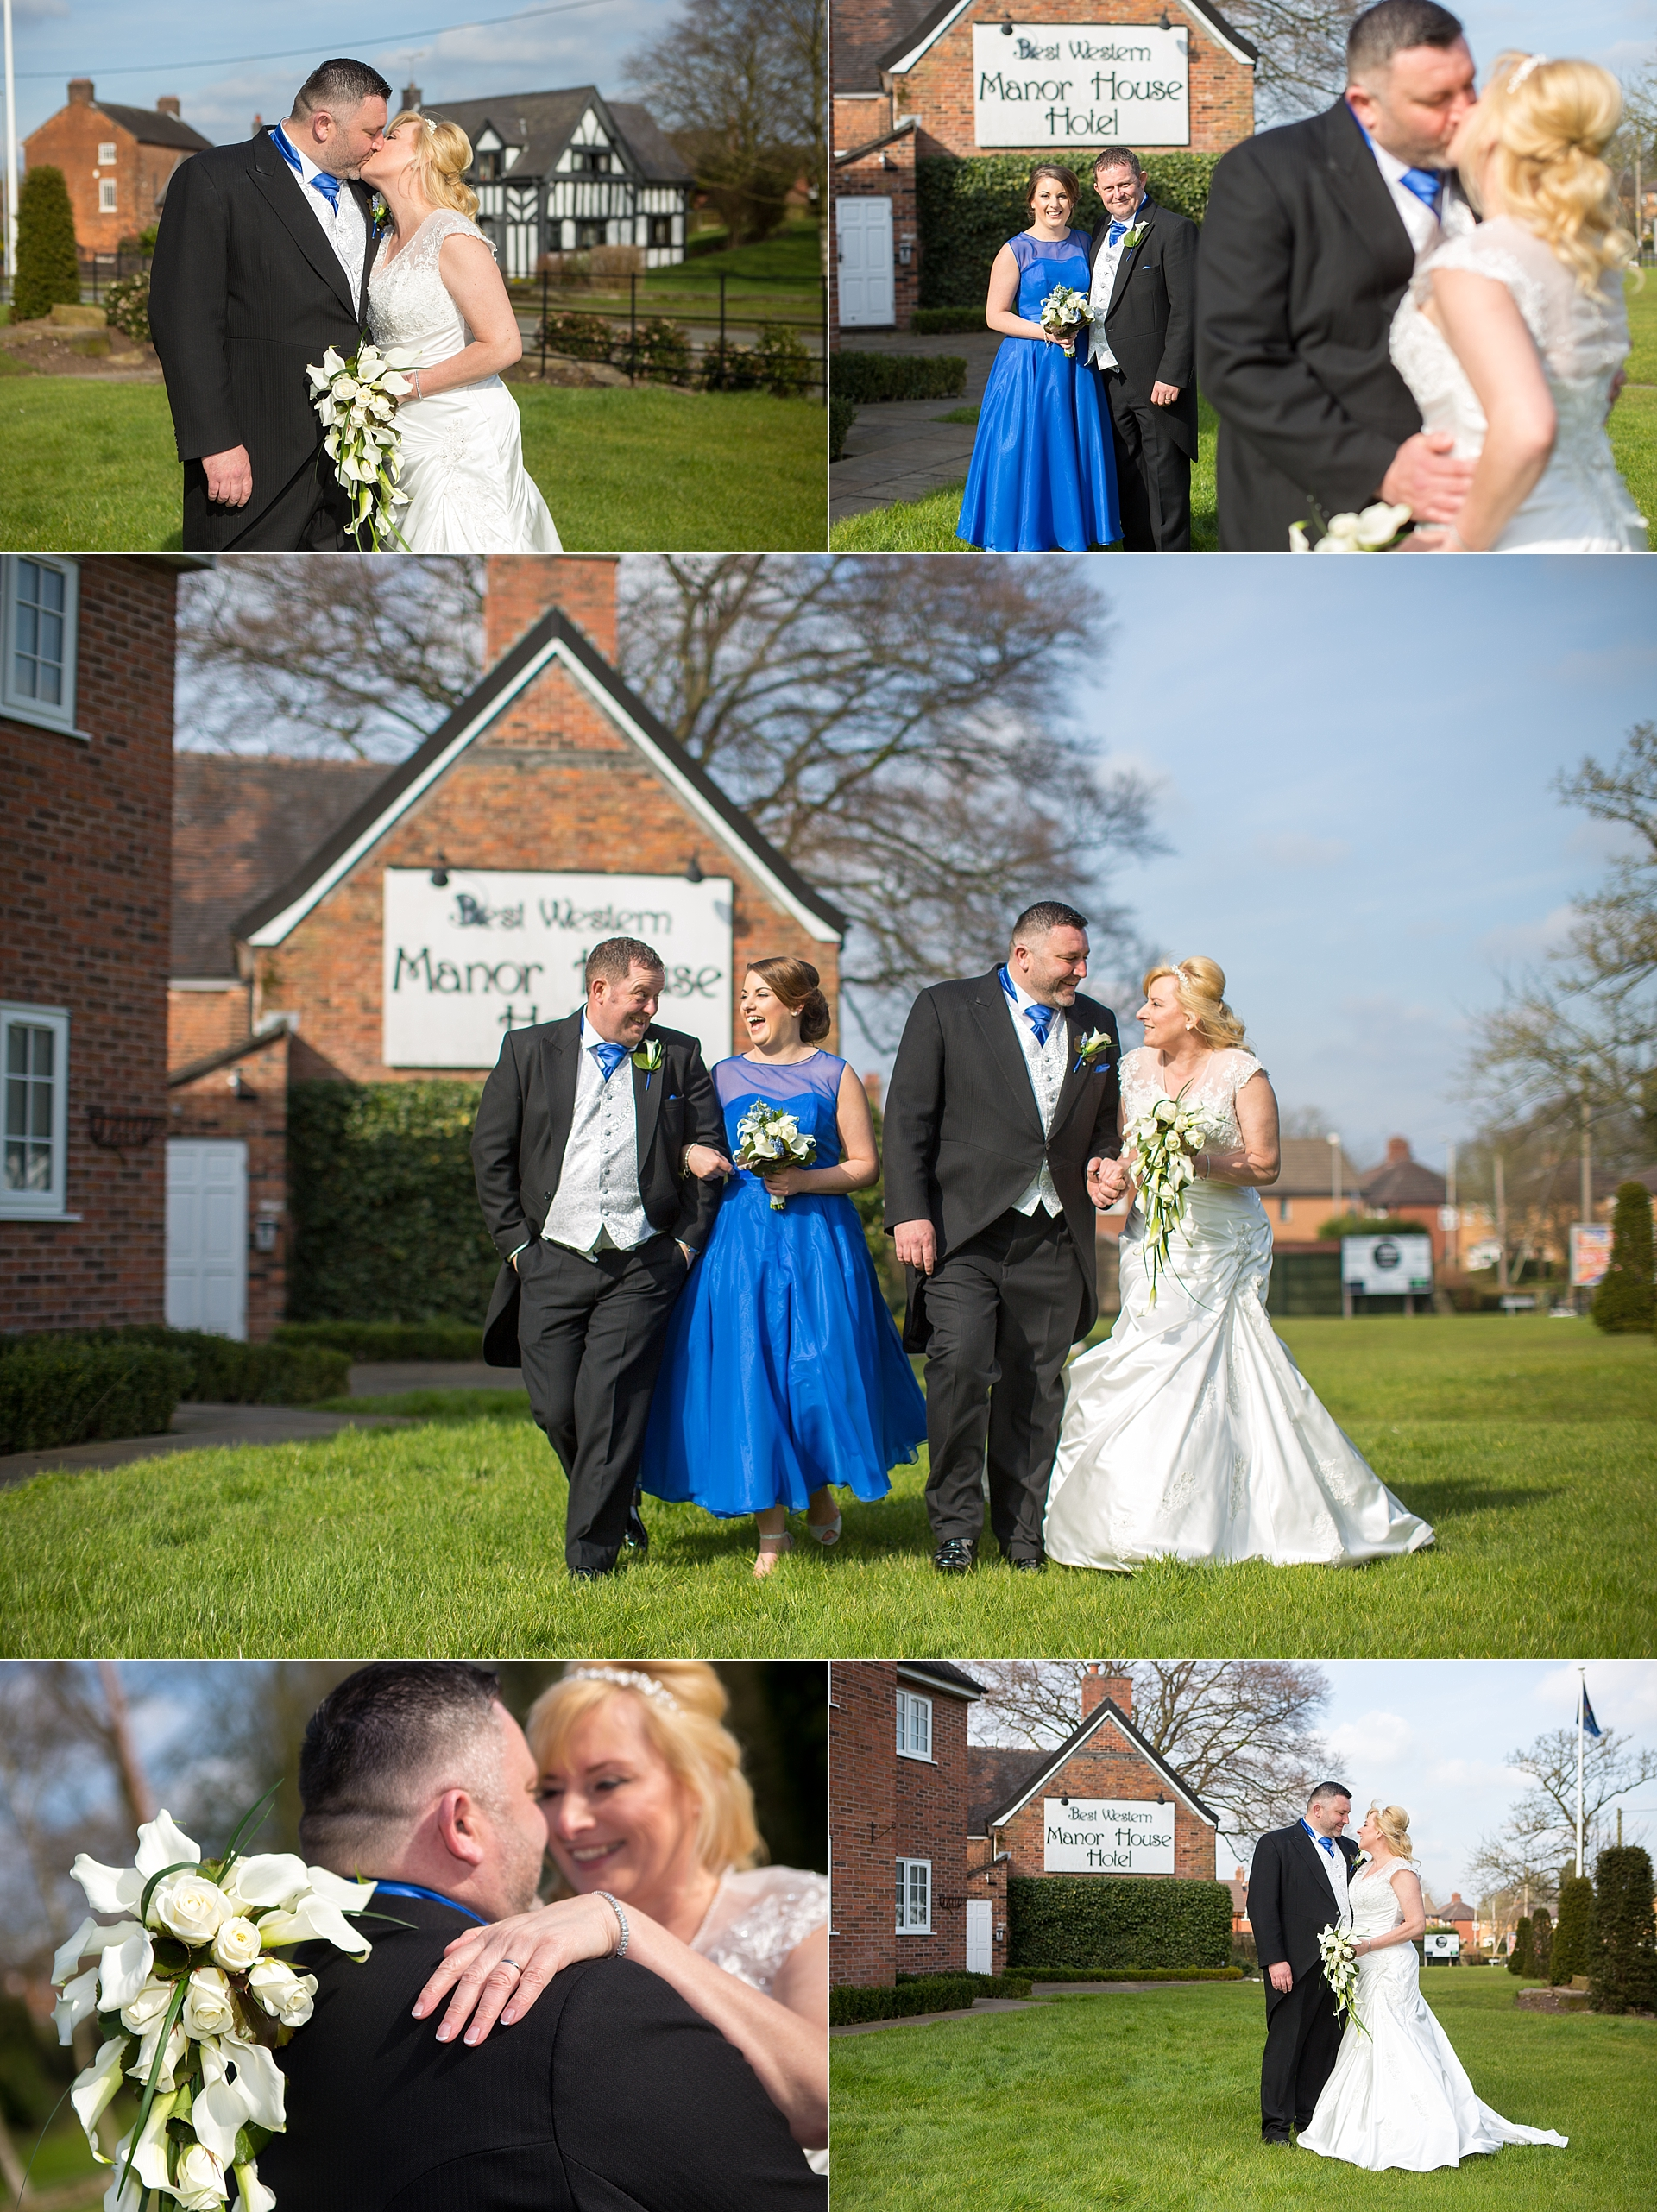 wedding photographer manor house alsager stoke on trent 6.jpg